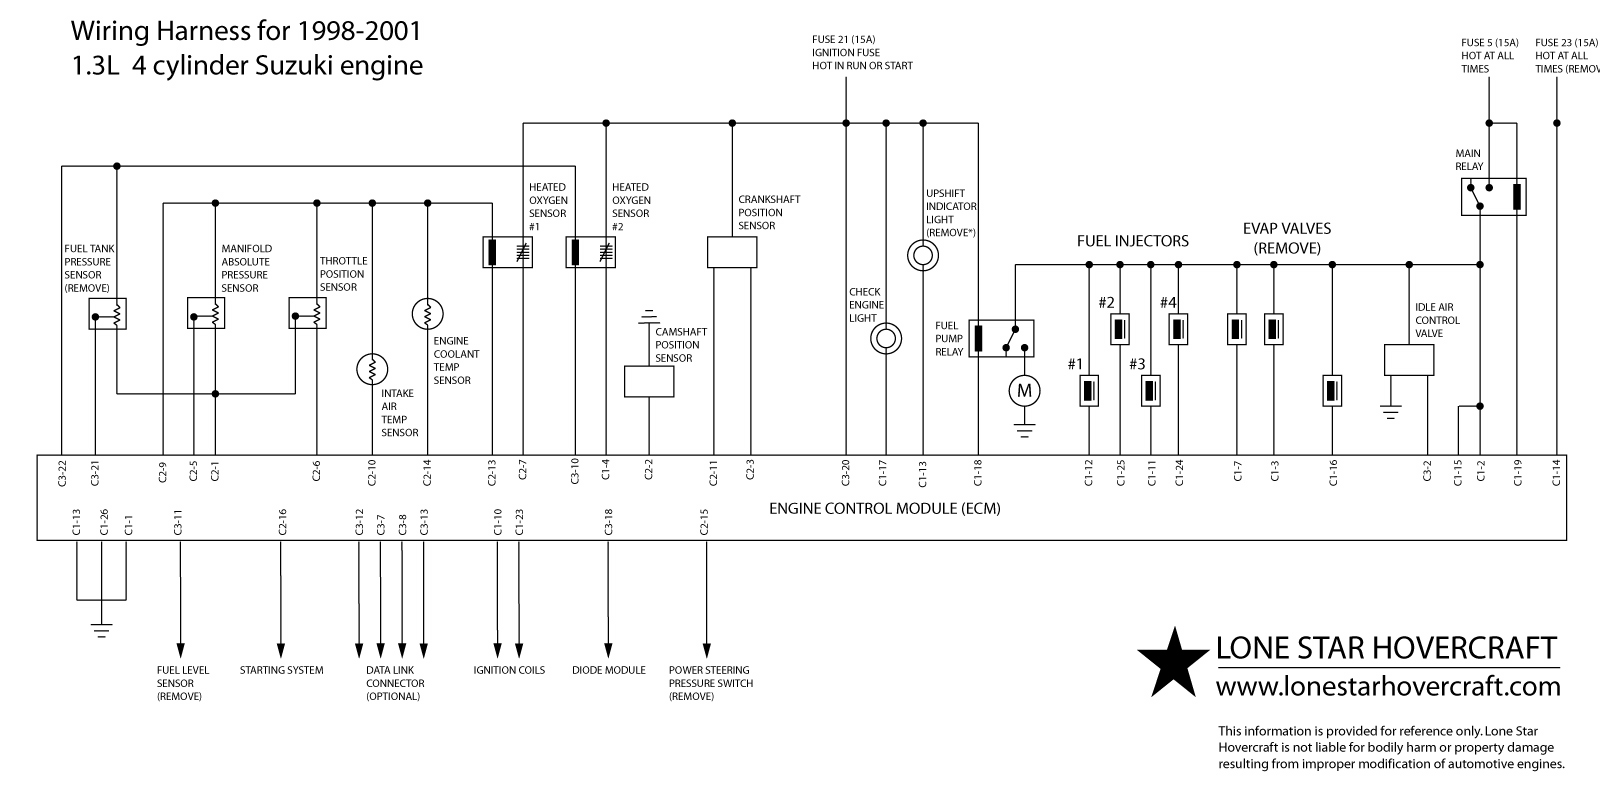 350 Tbi Wiring Harness Diagram On Vacuum For 1984 Chevy Swift 1 3 Ecu Trusted U2022 Rh Soulmatestyle Co